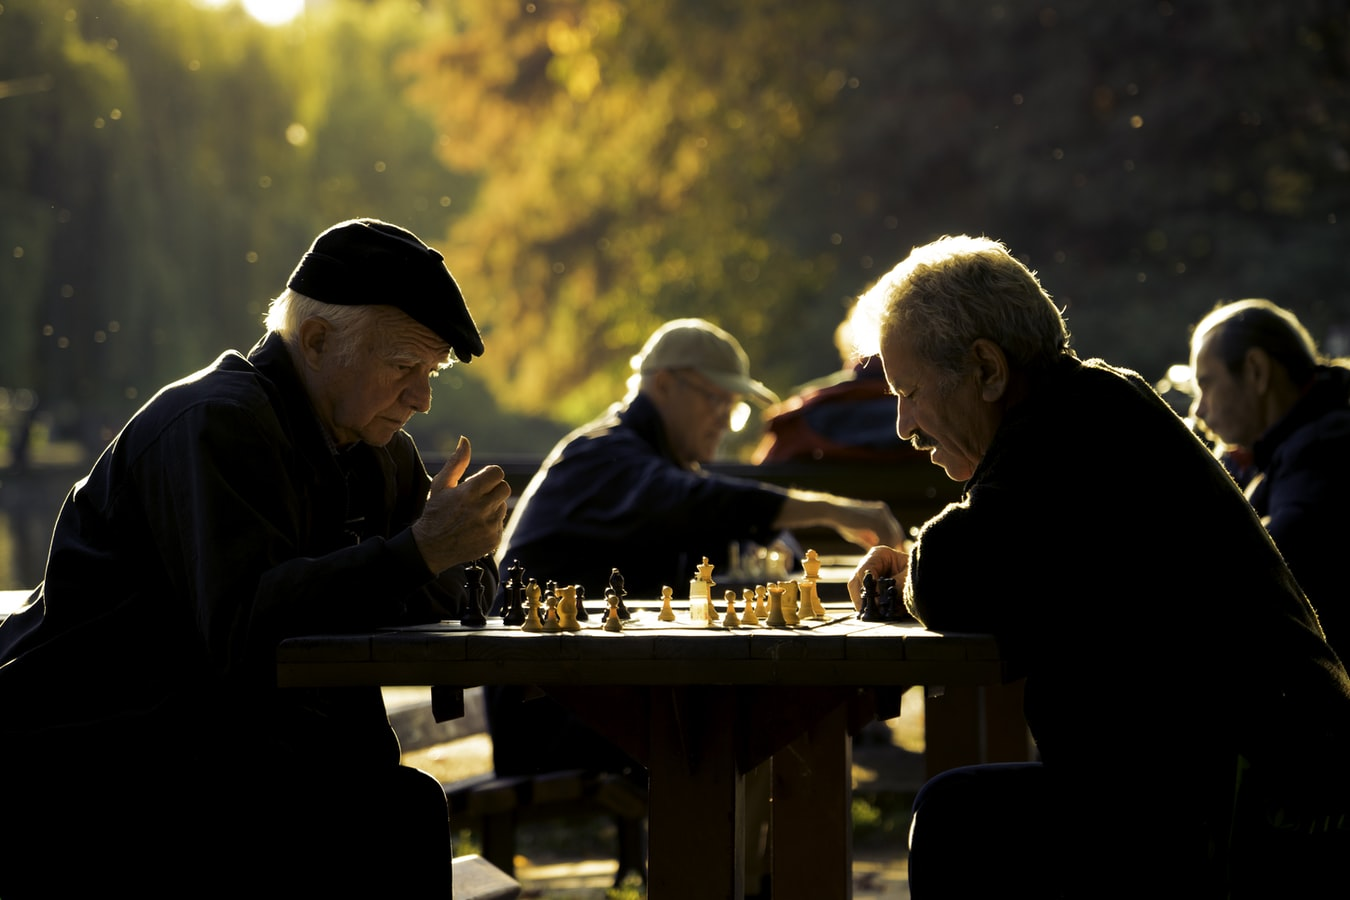 Two elderly men playing chess in a park.